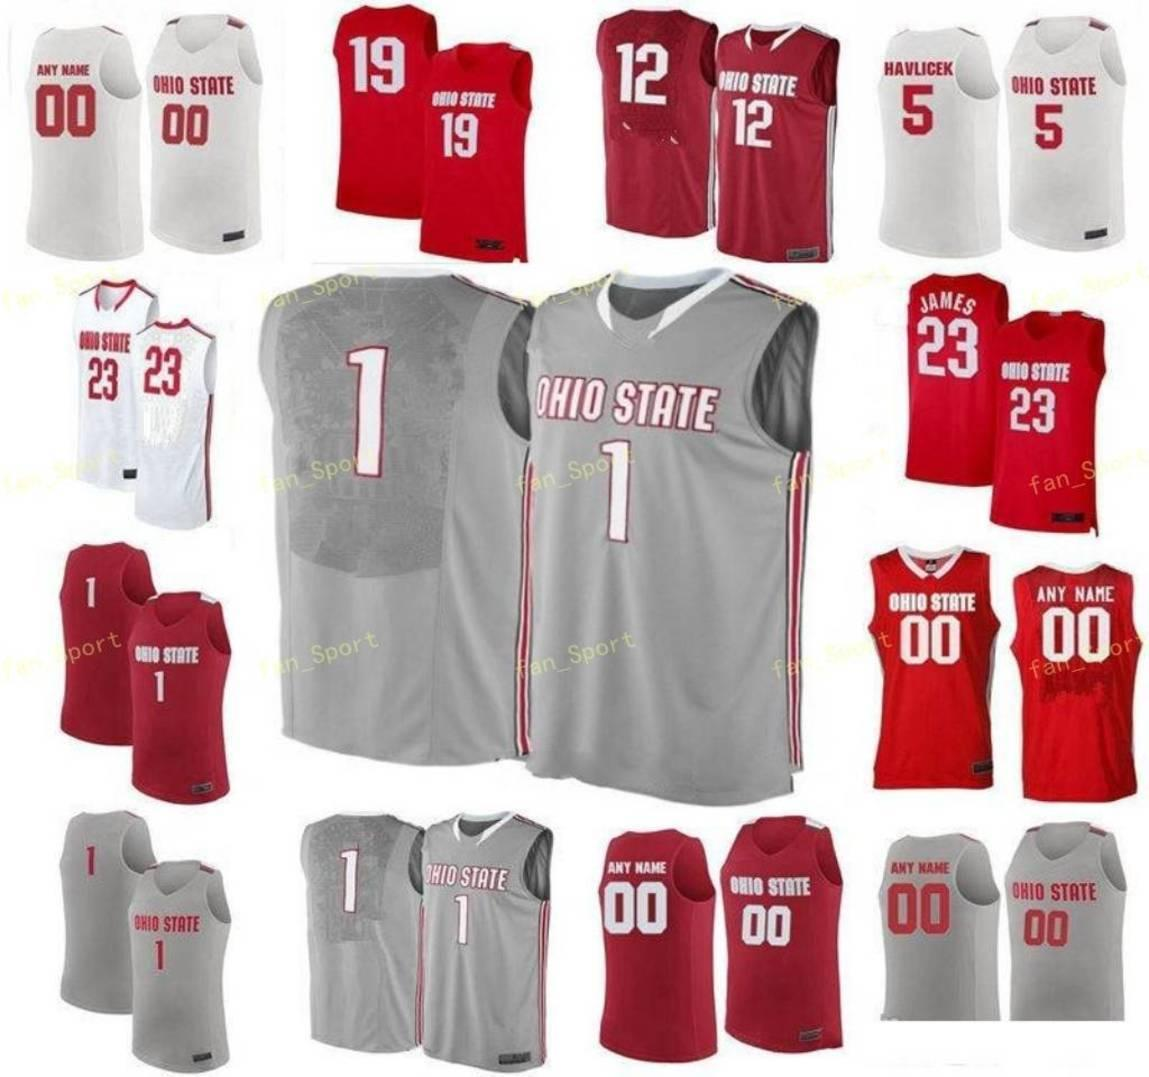 NCAA College Ohio State Buckeyes 농구 저지 0 Russell 1 Conley Luther Muhammad 10 Justin Ahrens 11 Jerry Lucas 사용자 정의 스티치